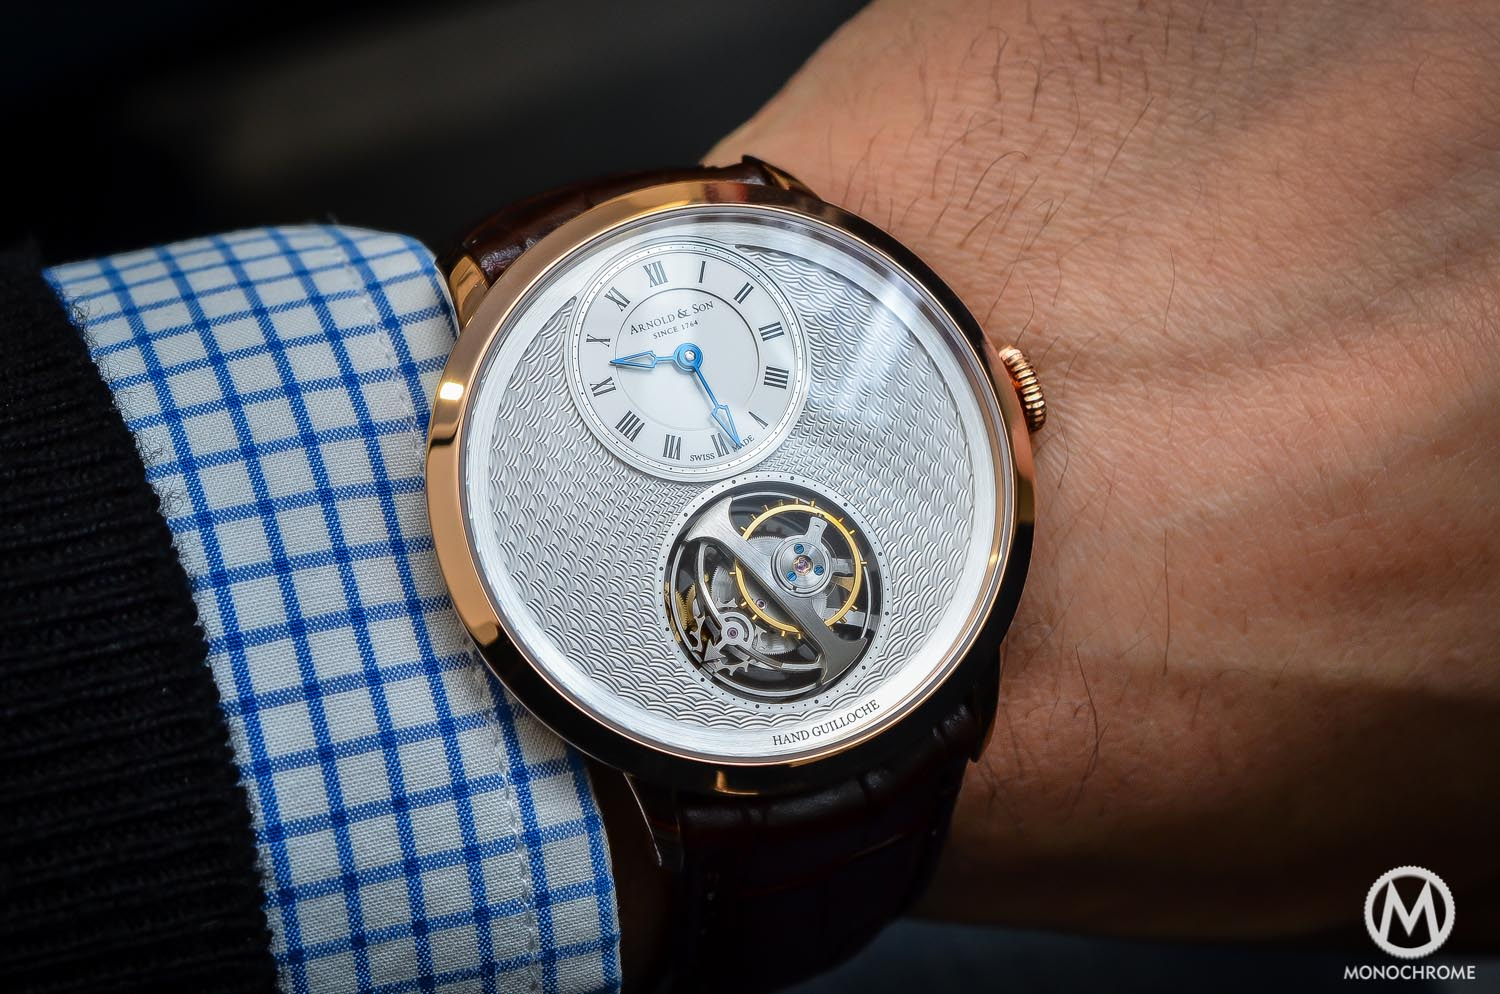 Hands-on – The Arnold and Son UTTE – Ultra Thin Tourbillon Escapement, with hand guilloche dial (live pics & price)